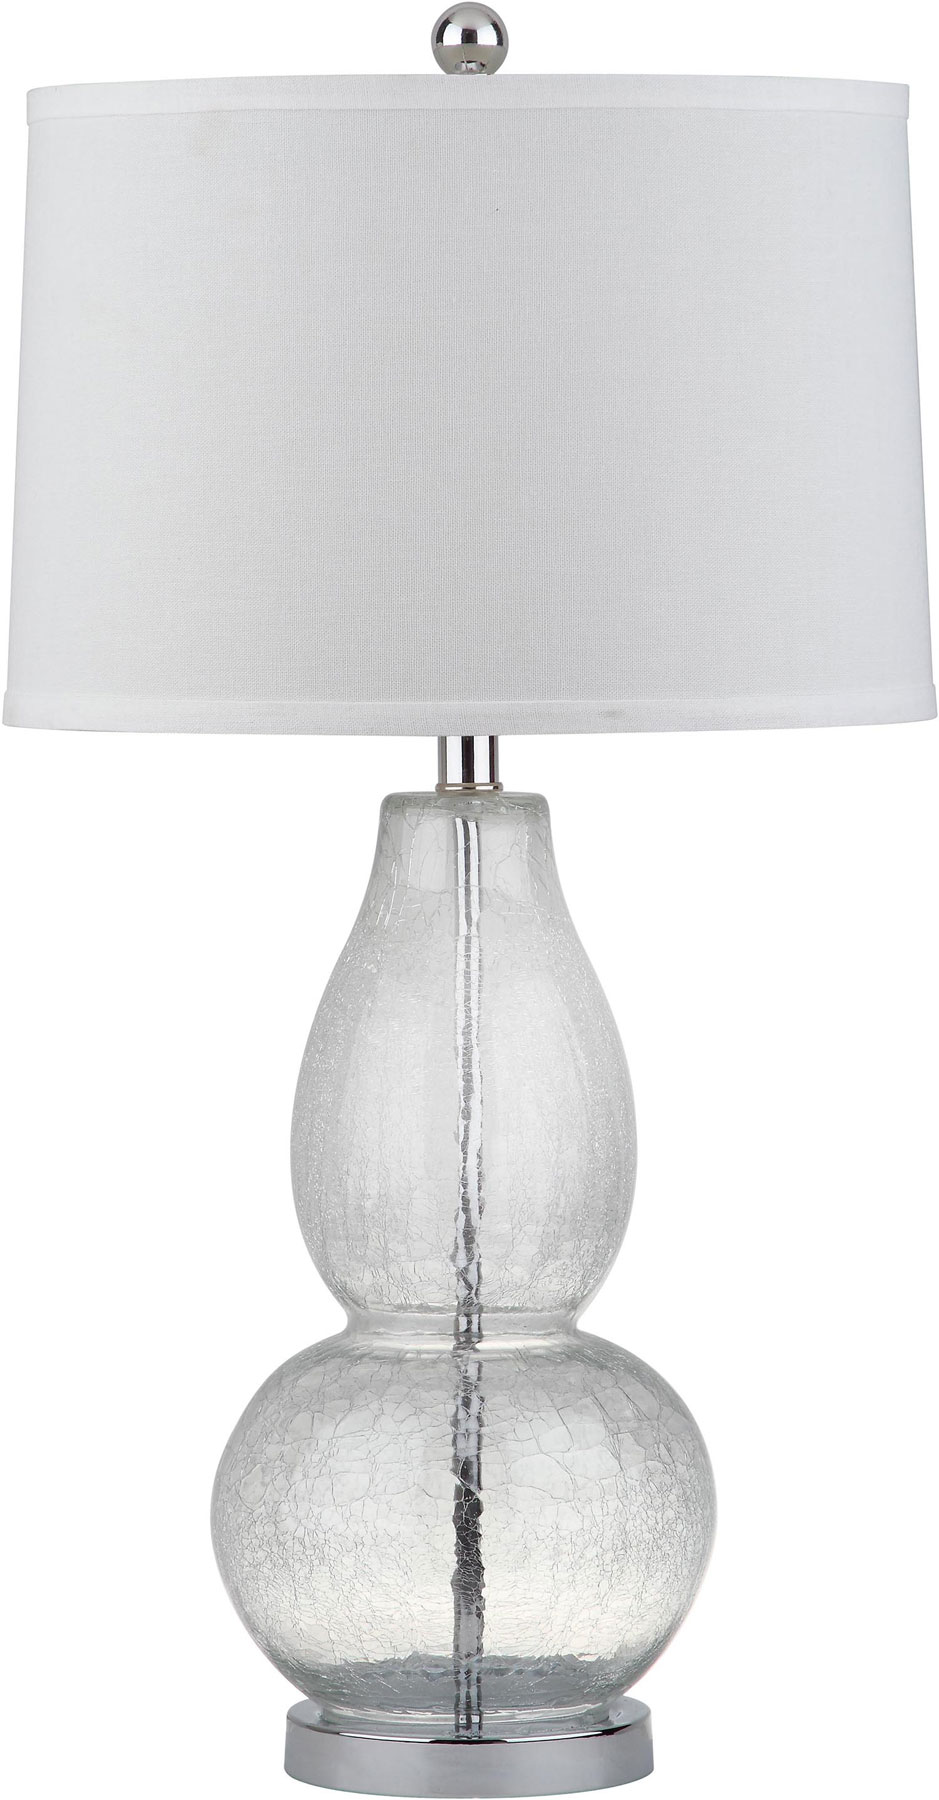 Glass Crackle Lamp Lit4155a Set2 Table Lamps Lighting By Safavieh